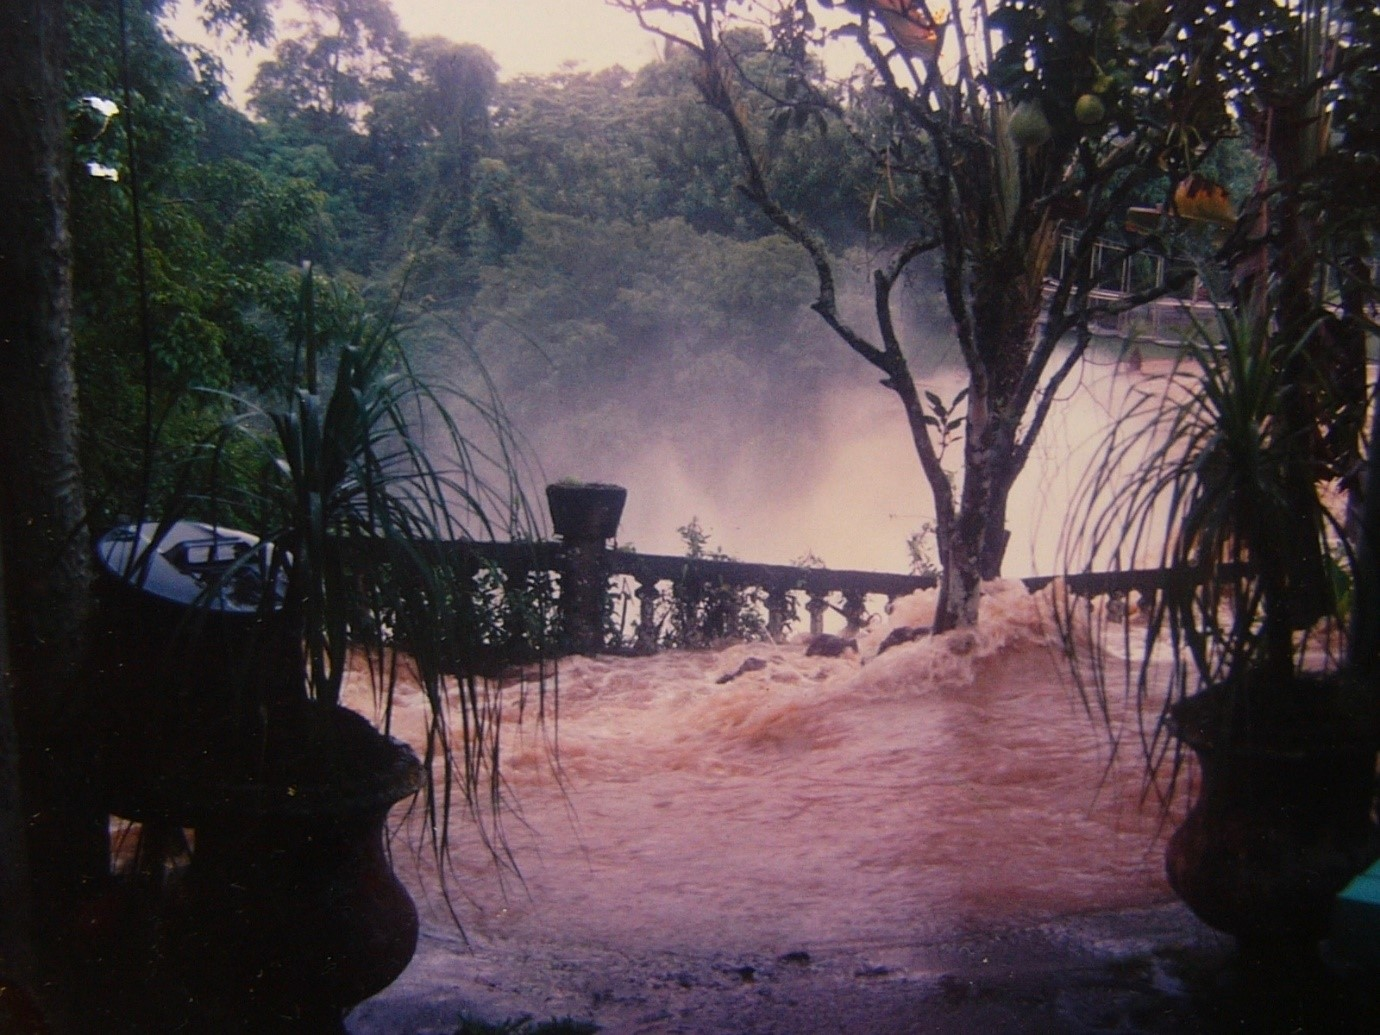 Photograph of yet another flood at Paronella Park. © Paronella Park Photograph Collection.